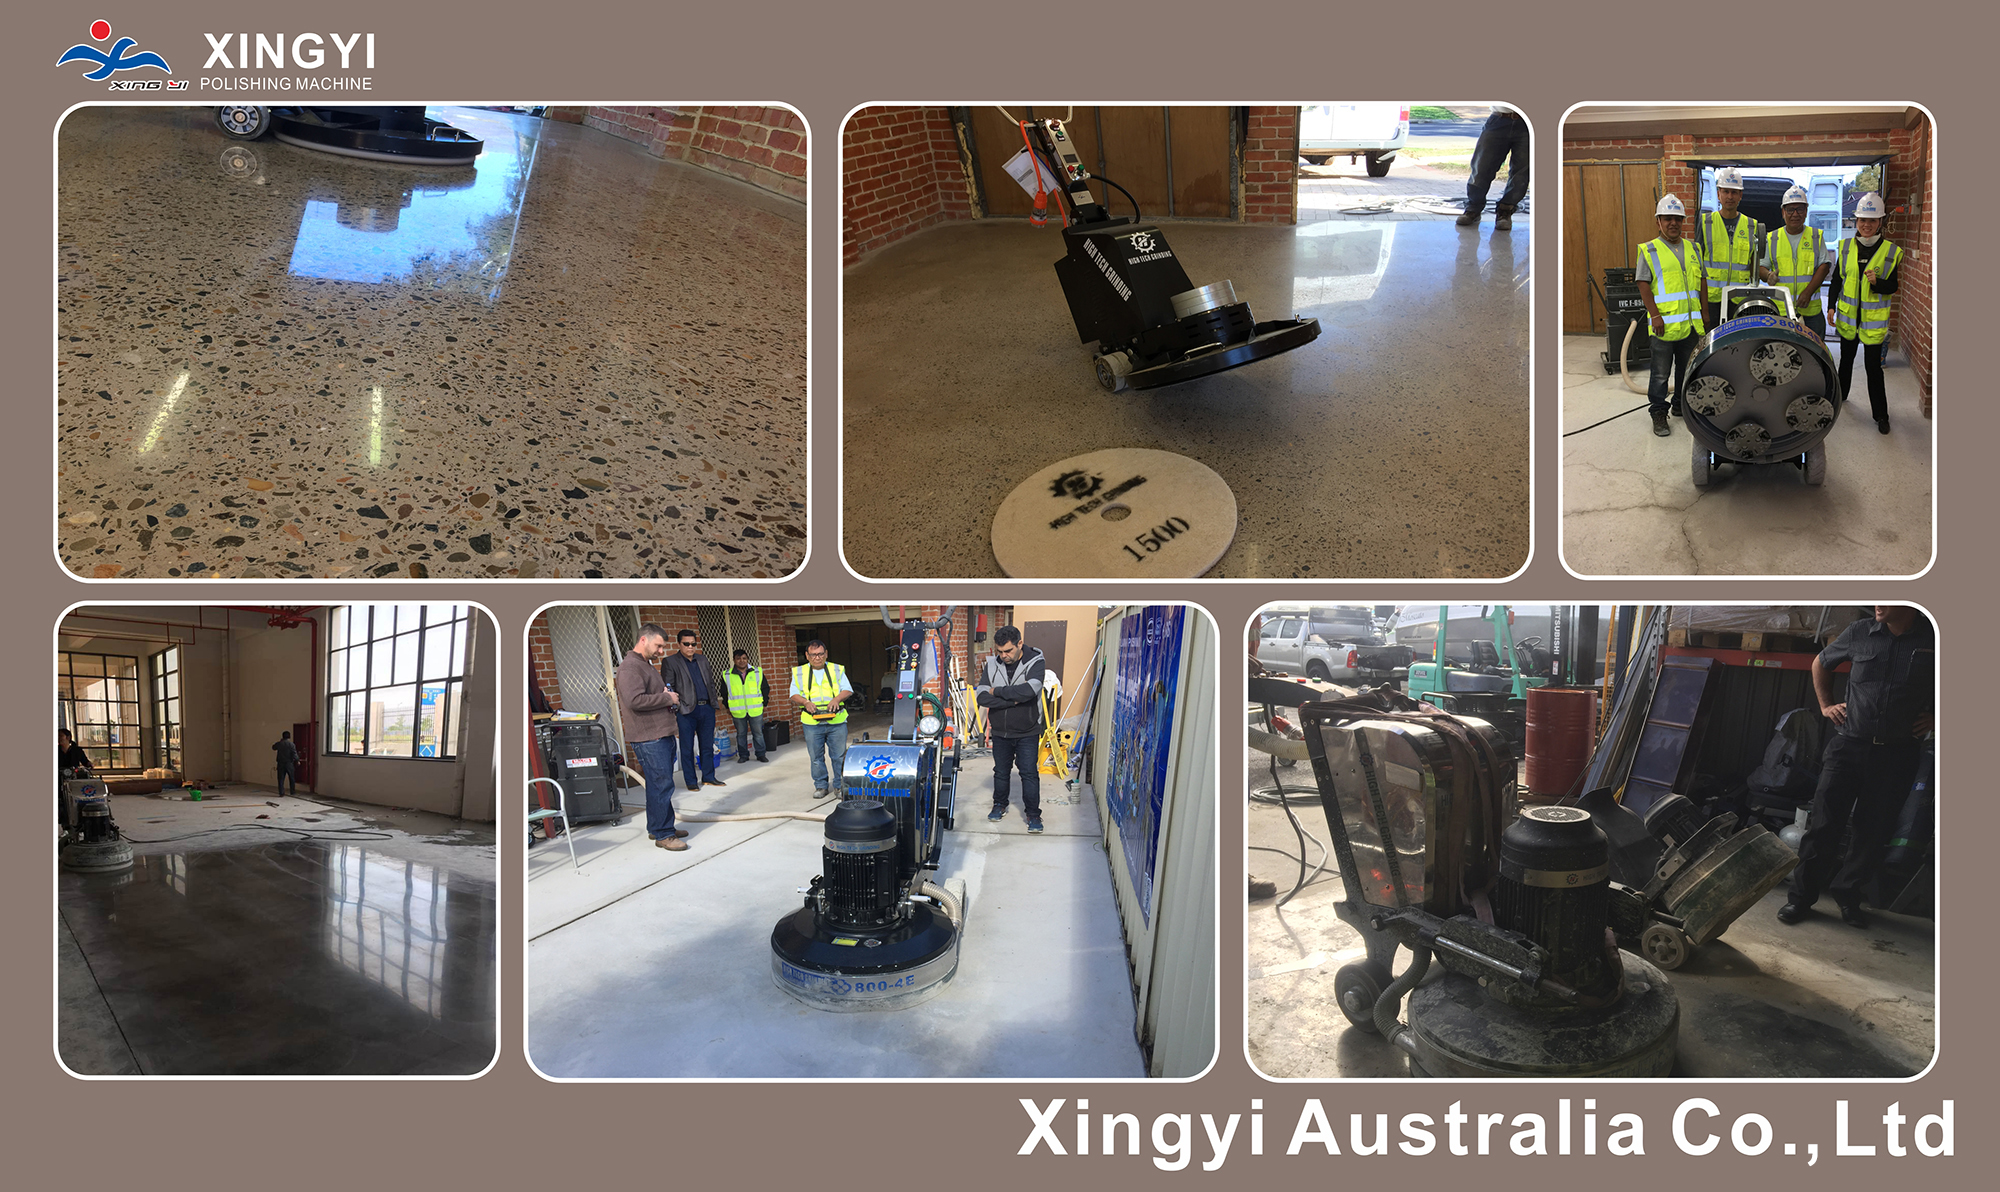 Congratulations to XINGYI Australia Co., Ltd